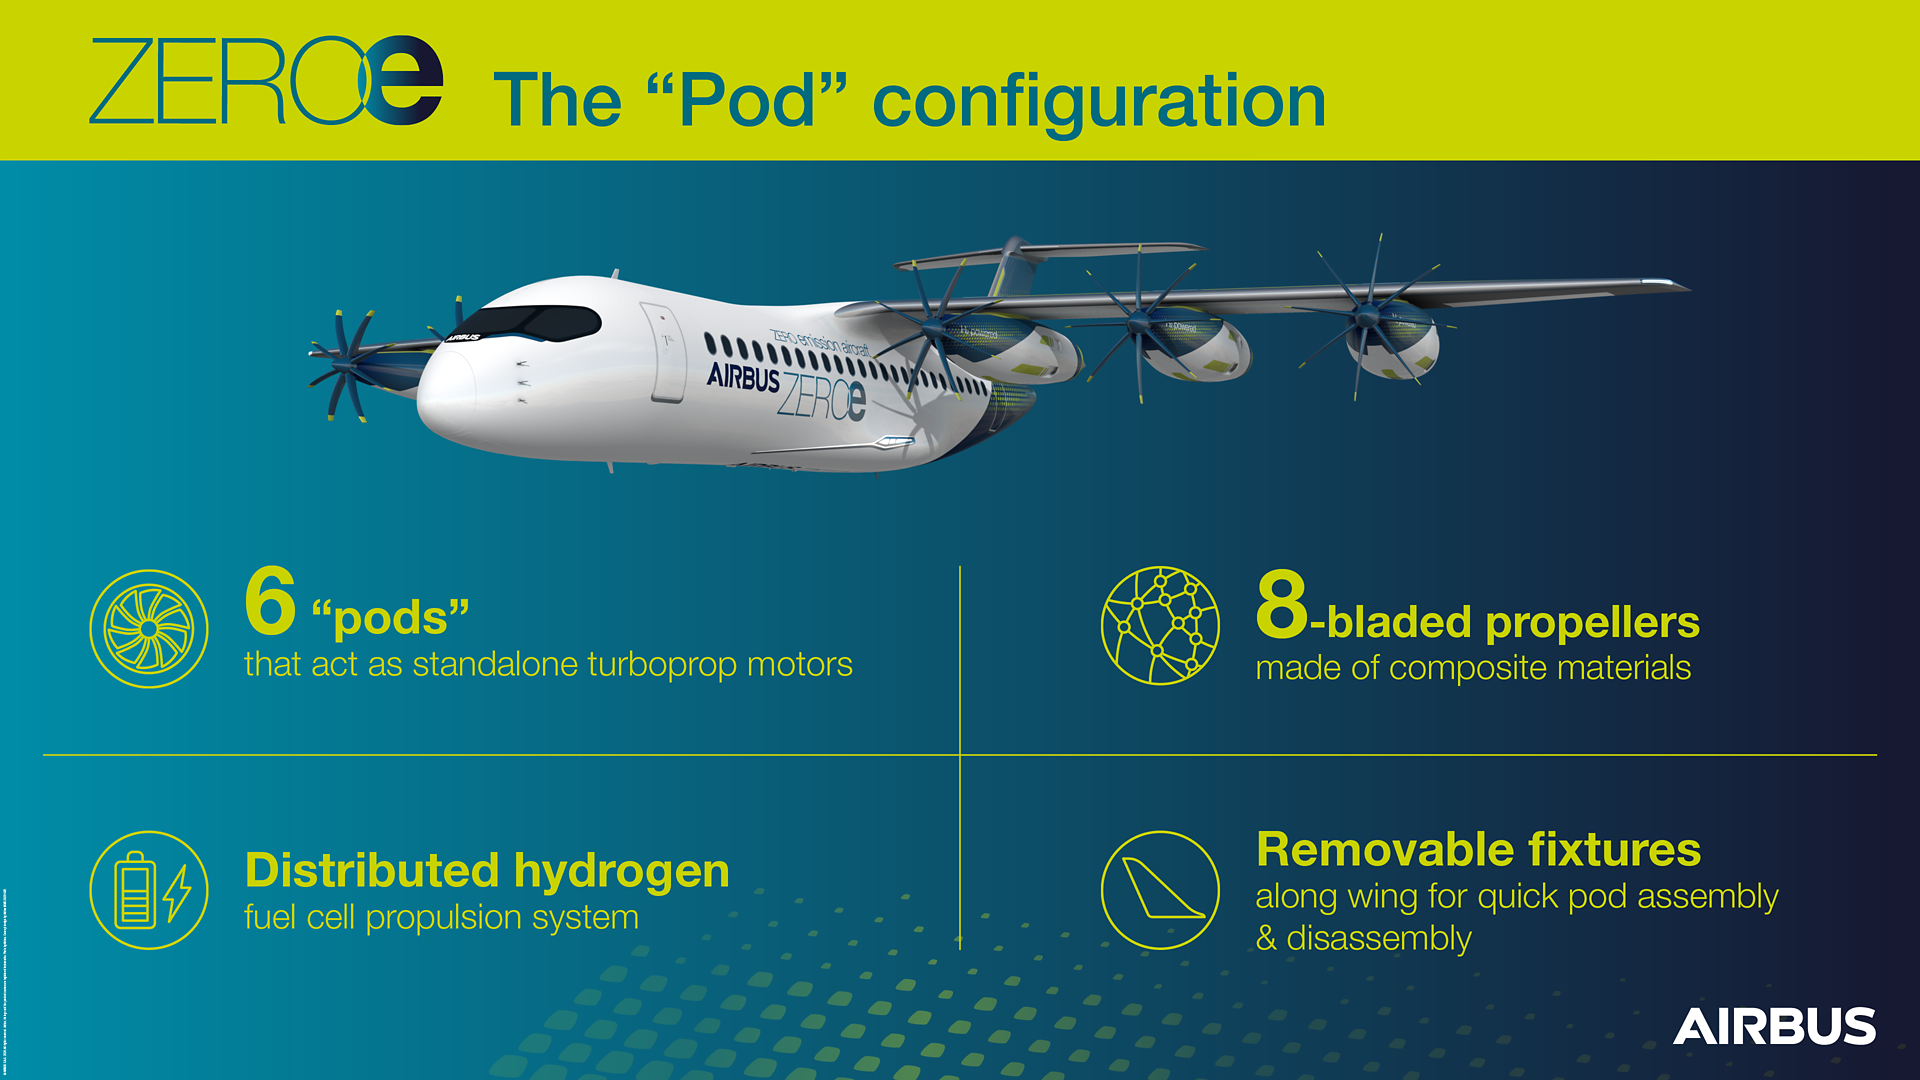 This innovative pod configuration features six standalone turboprop motors based on a distributed hydrogen fuel cell propulsion system and removable fixtures for quick assembly and disassembly.